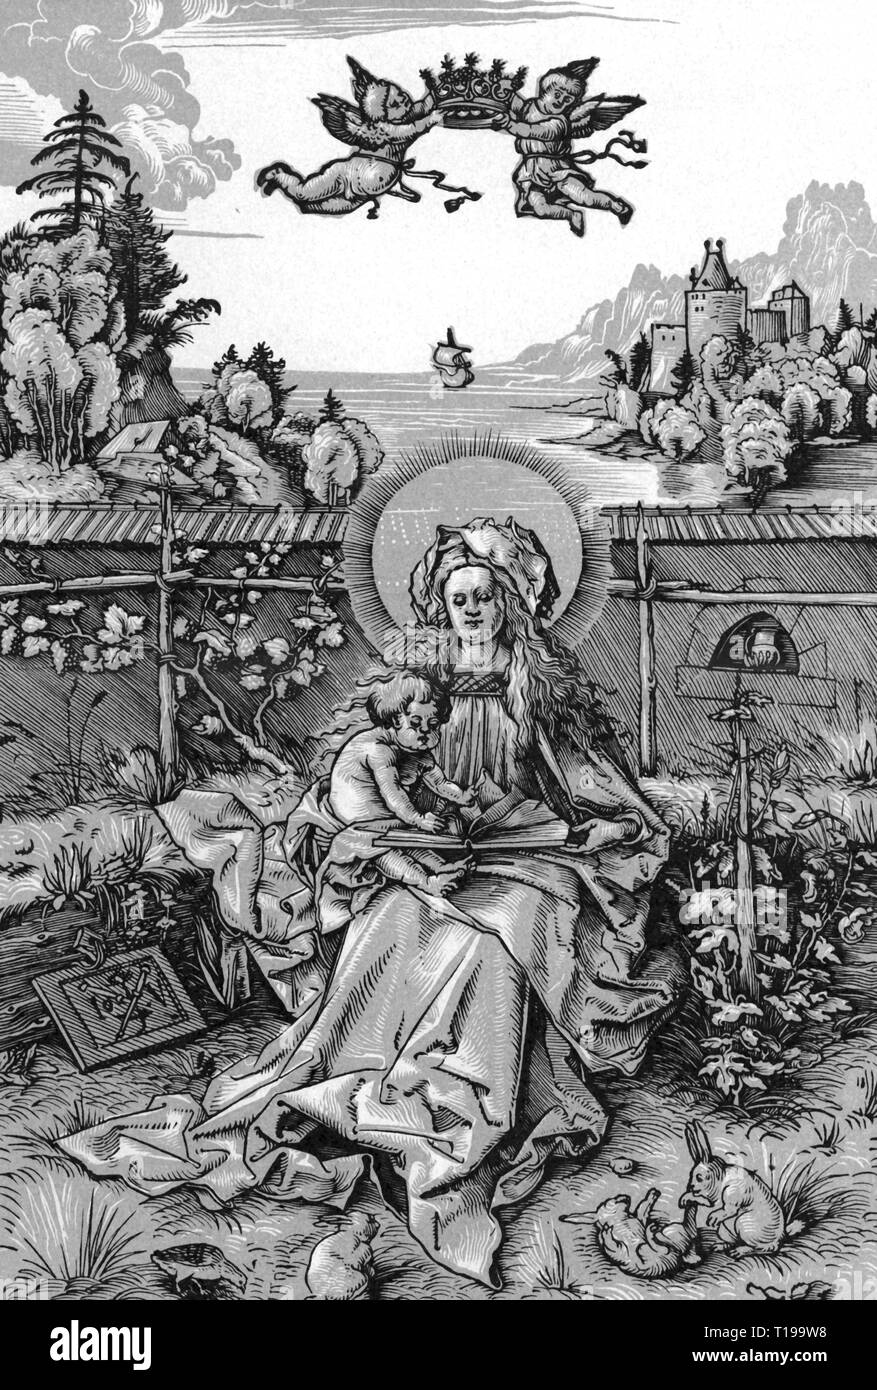 religion, Christianity, Madonna / Mary with child, 'Madonna on the grassy bank', bicolored copper engraving, by Johannes Wechtlin (* circa 1485), circa 1510, 26.9 x 18.1 cm, Royal gallery of prints, Berlin, Artist's Copyright has not to be cleared - Stock Image